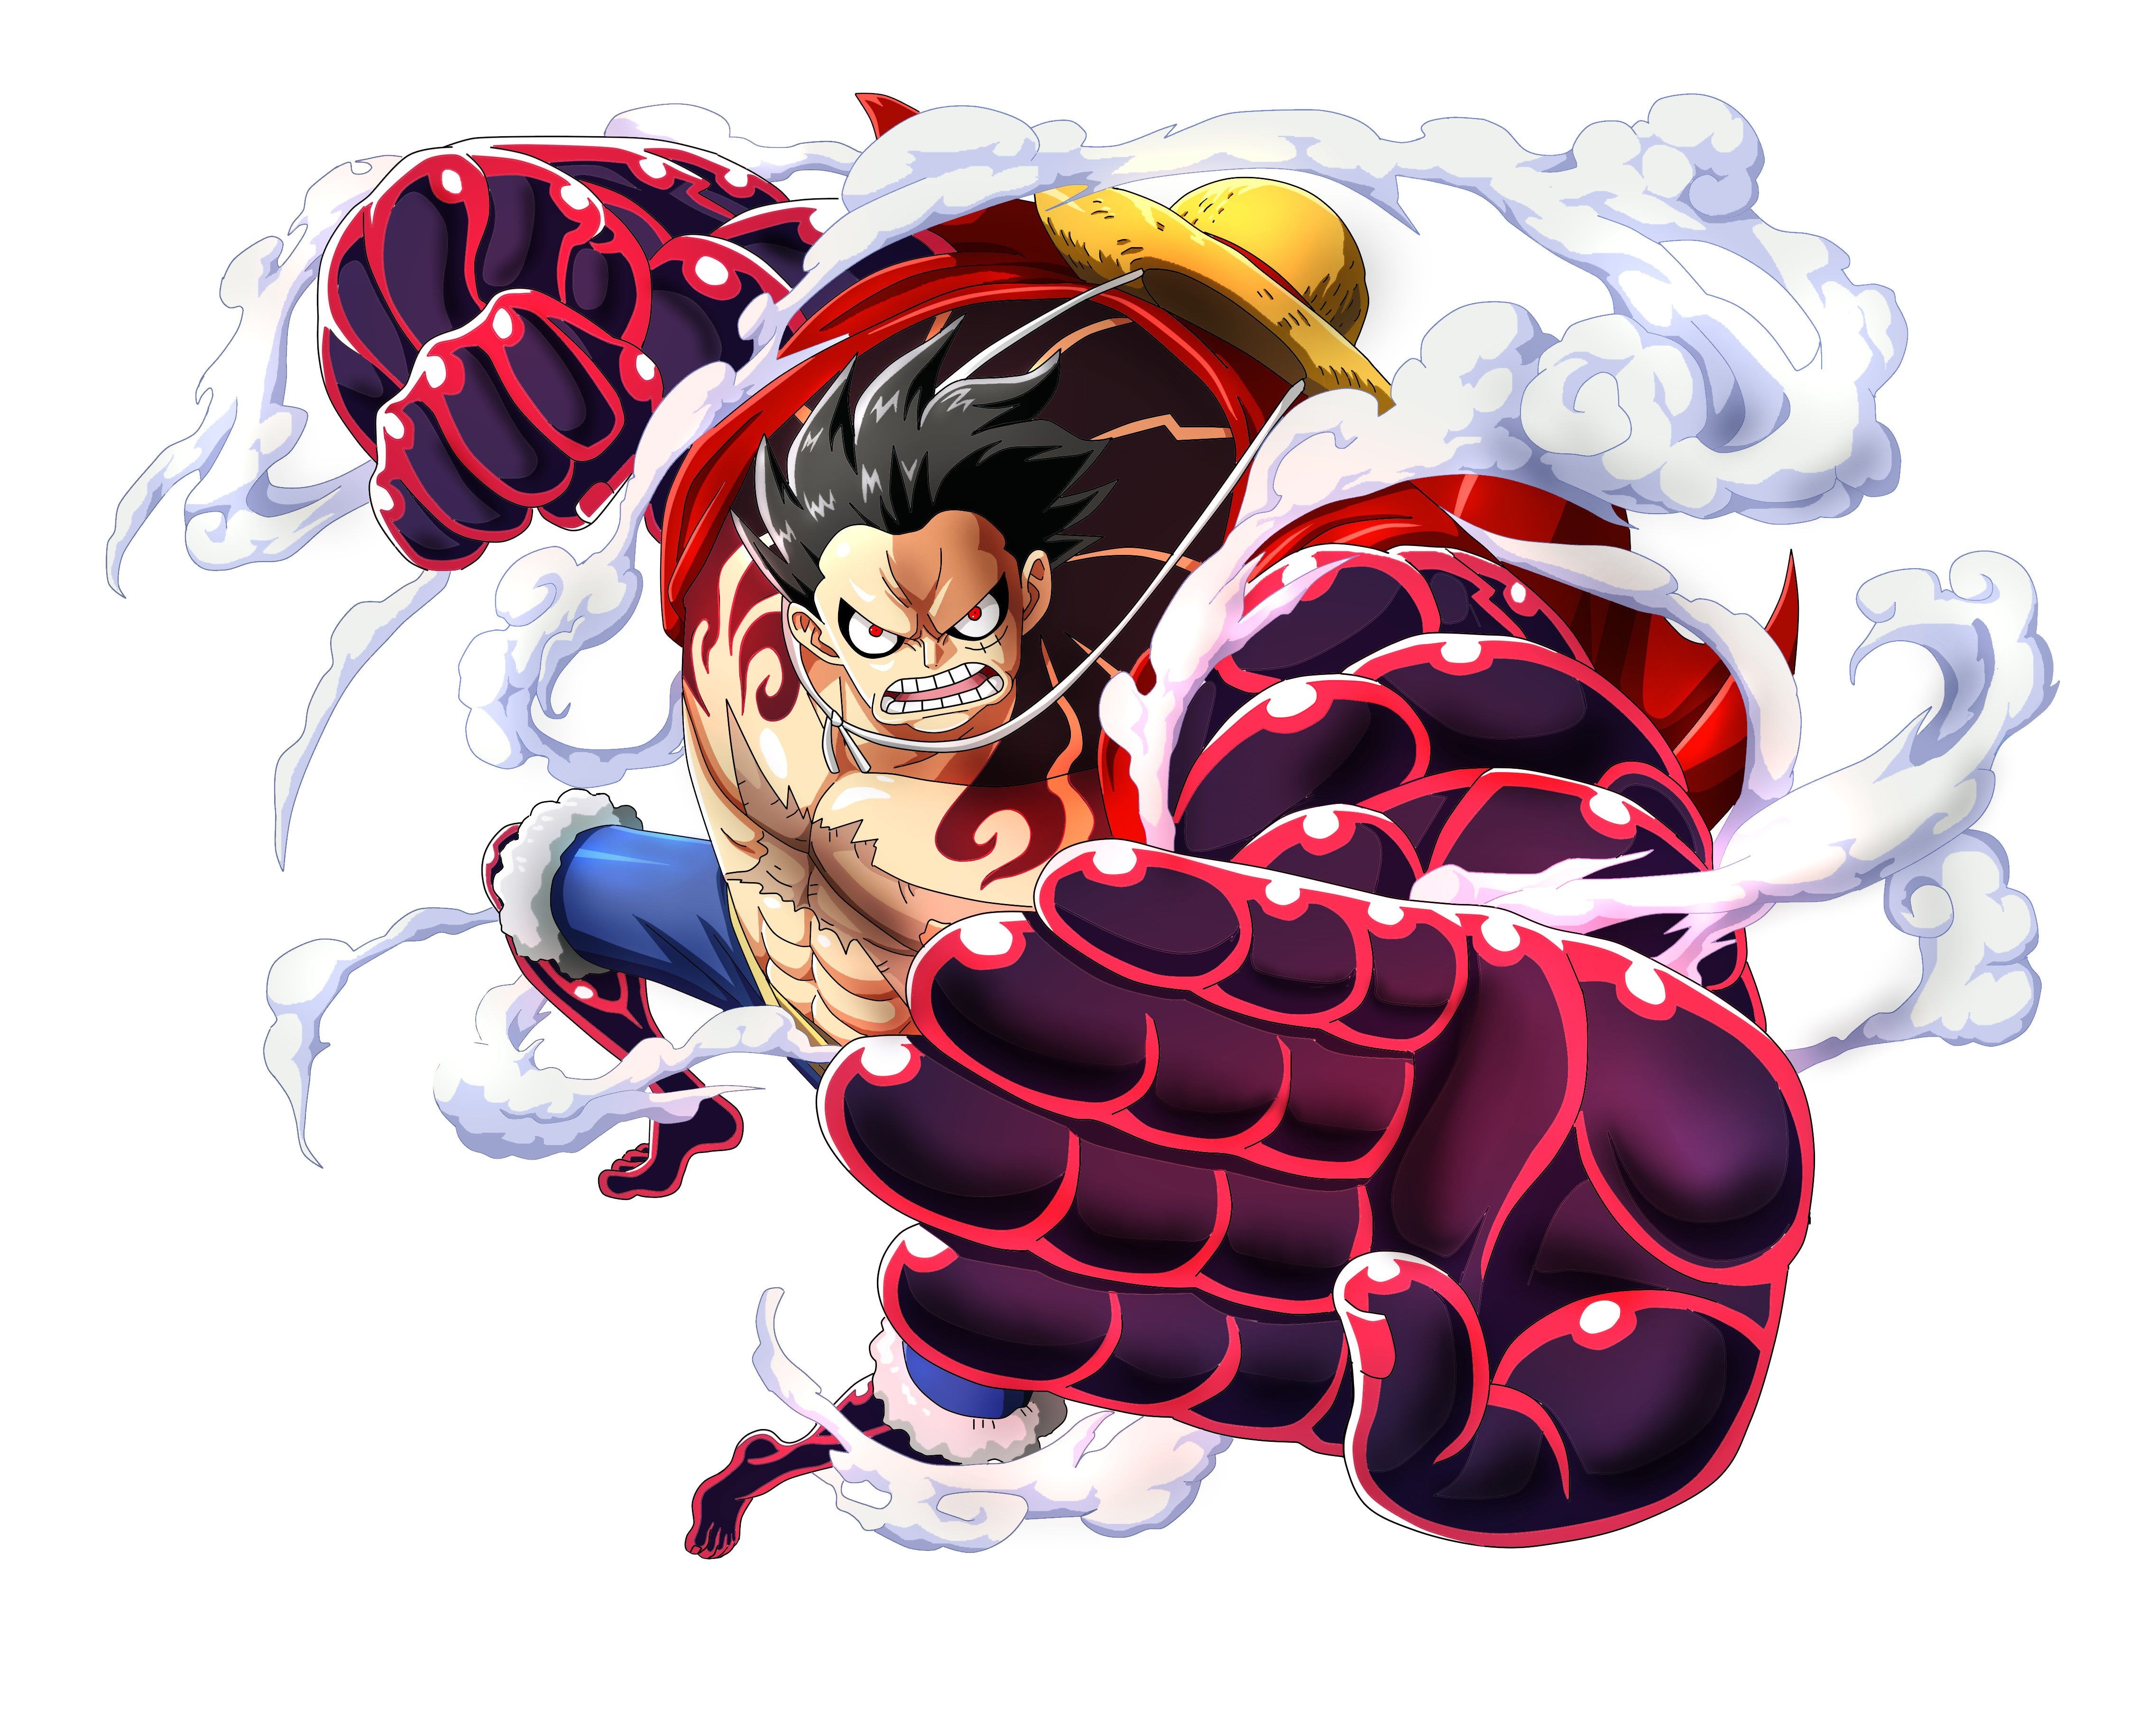 Monkey D Luffy One Piece Anime Boy Punch